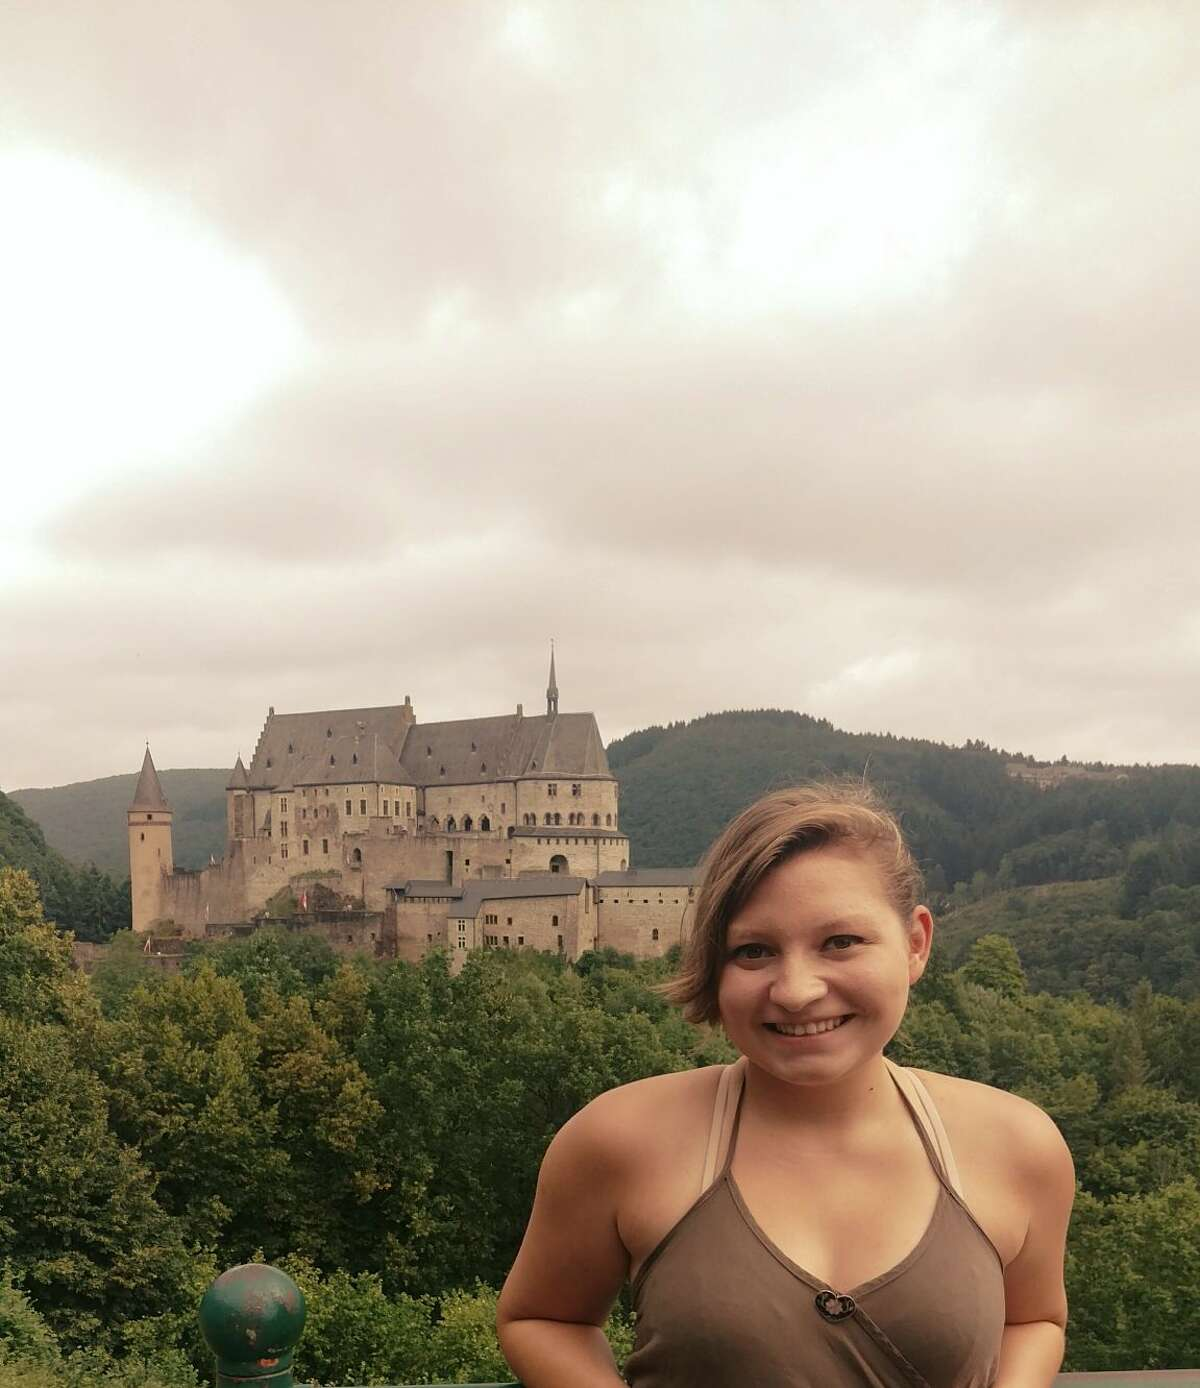 A castle in Luxembourg was among the sights Jennifer Taylor saw while on a Lions Club exchange program trip in July.